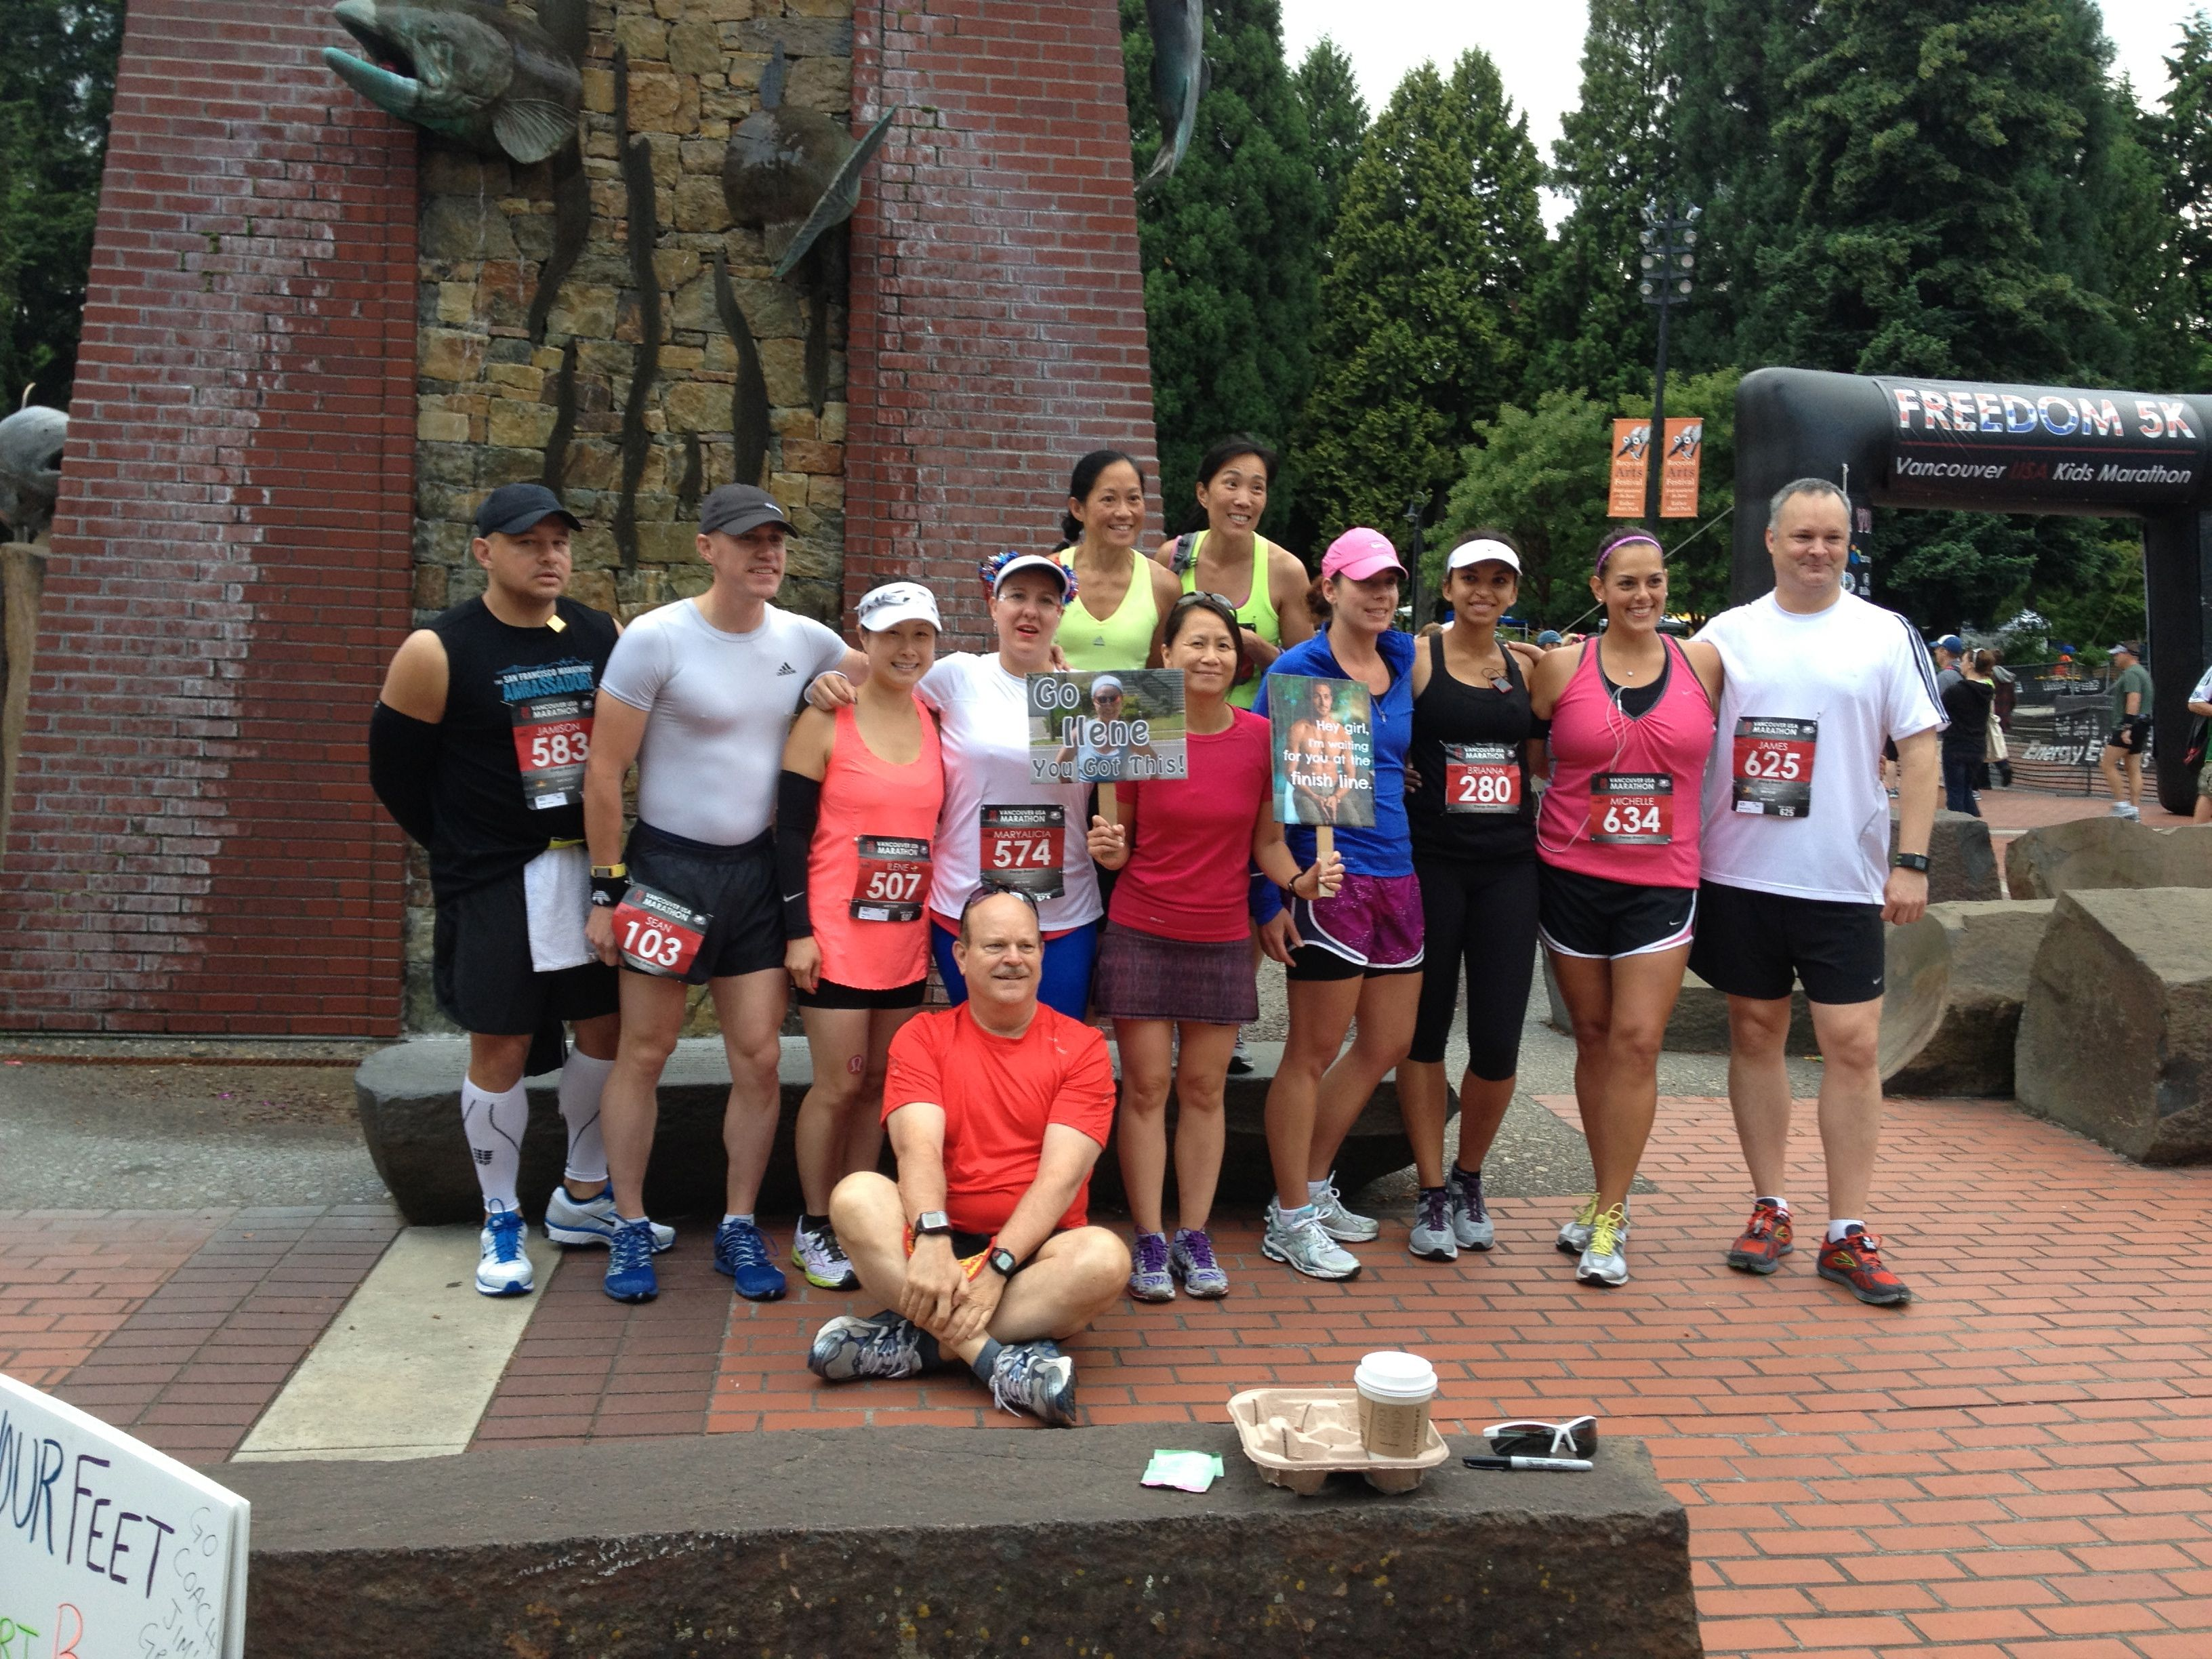 Coach Jim's Elite Runners in Training at the 2013 Vancouver, USA marathon.